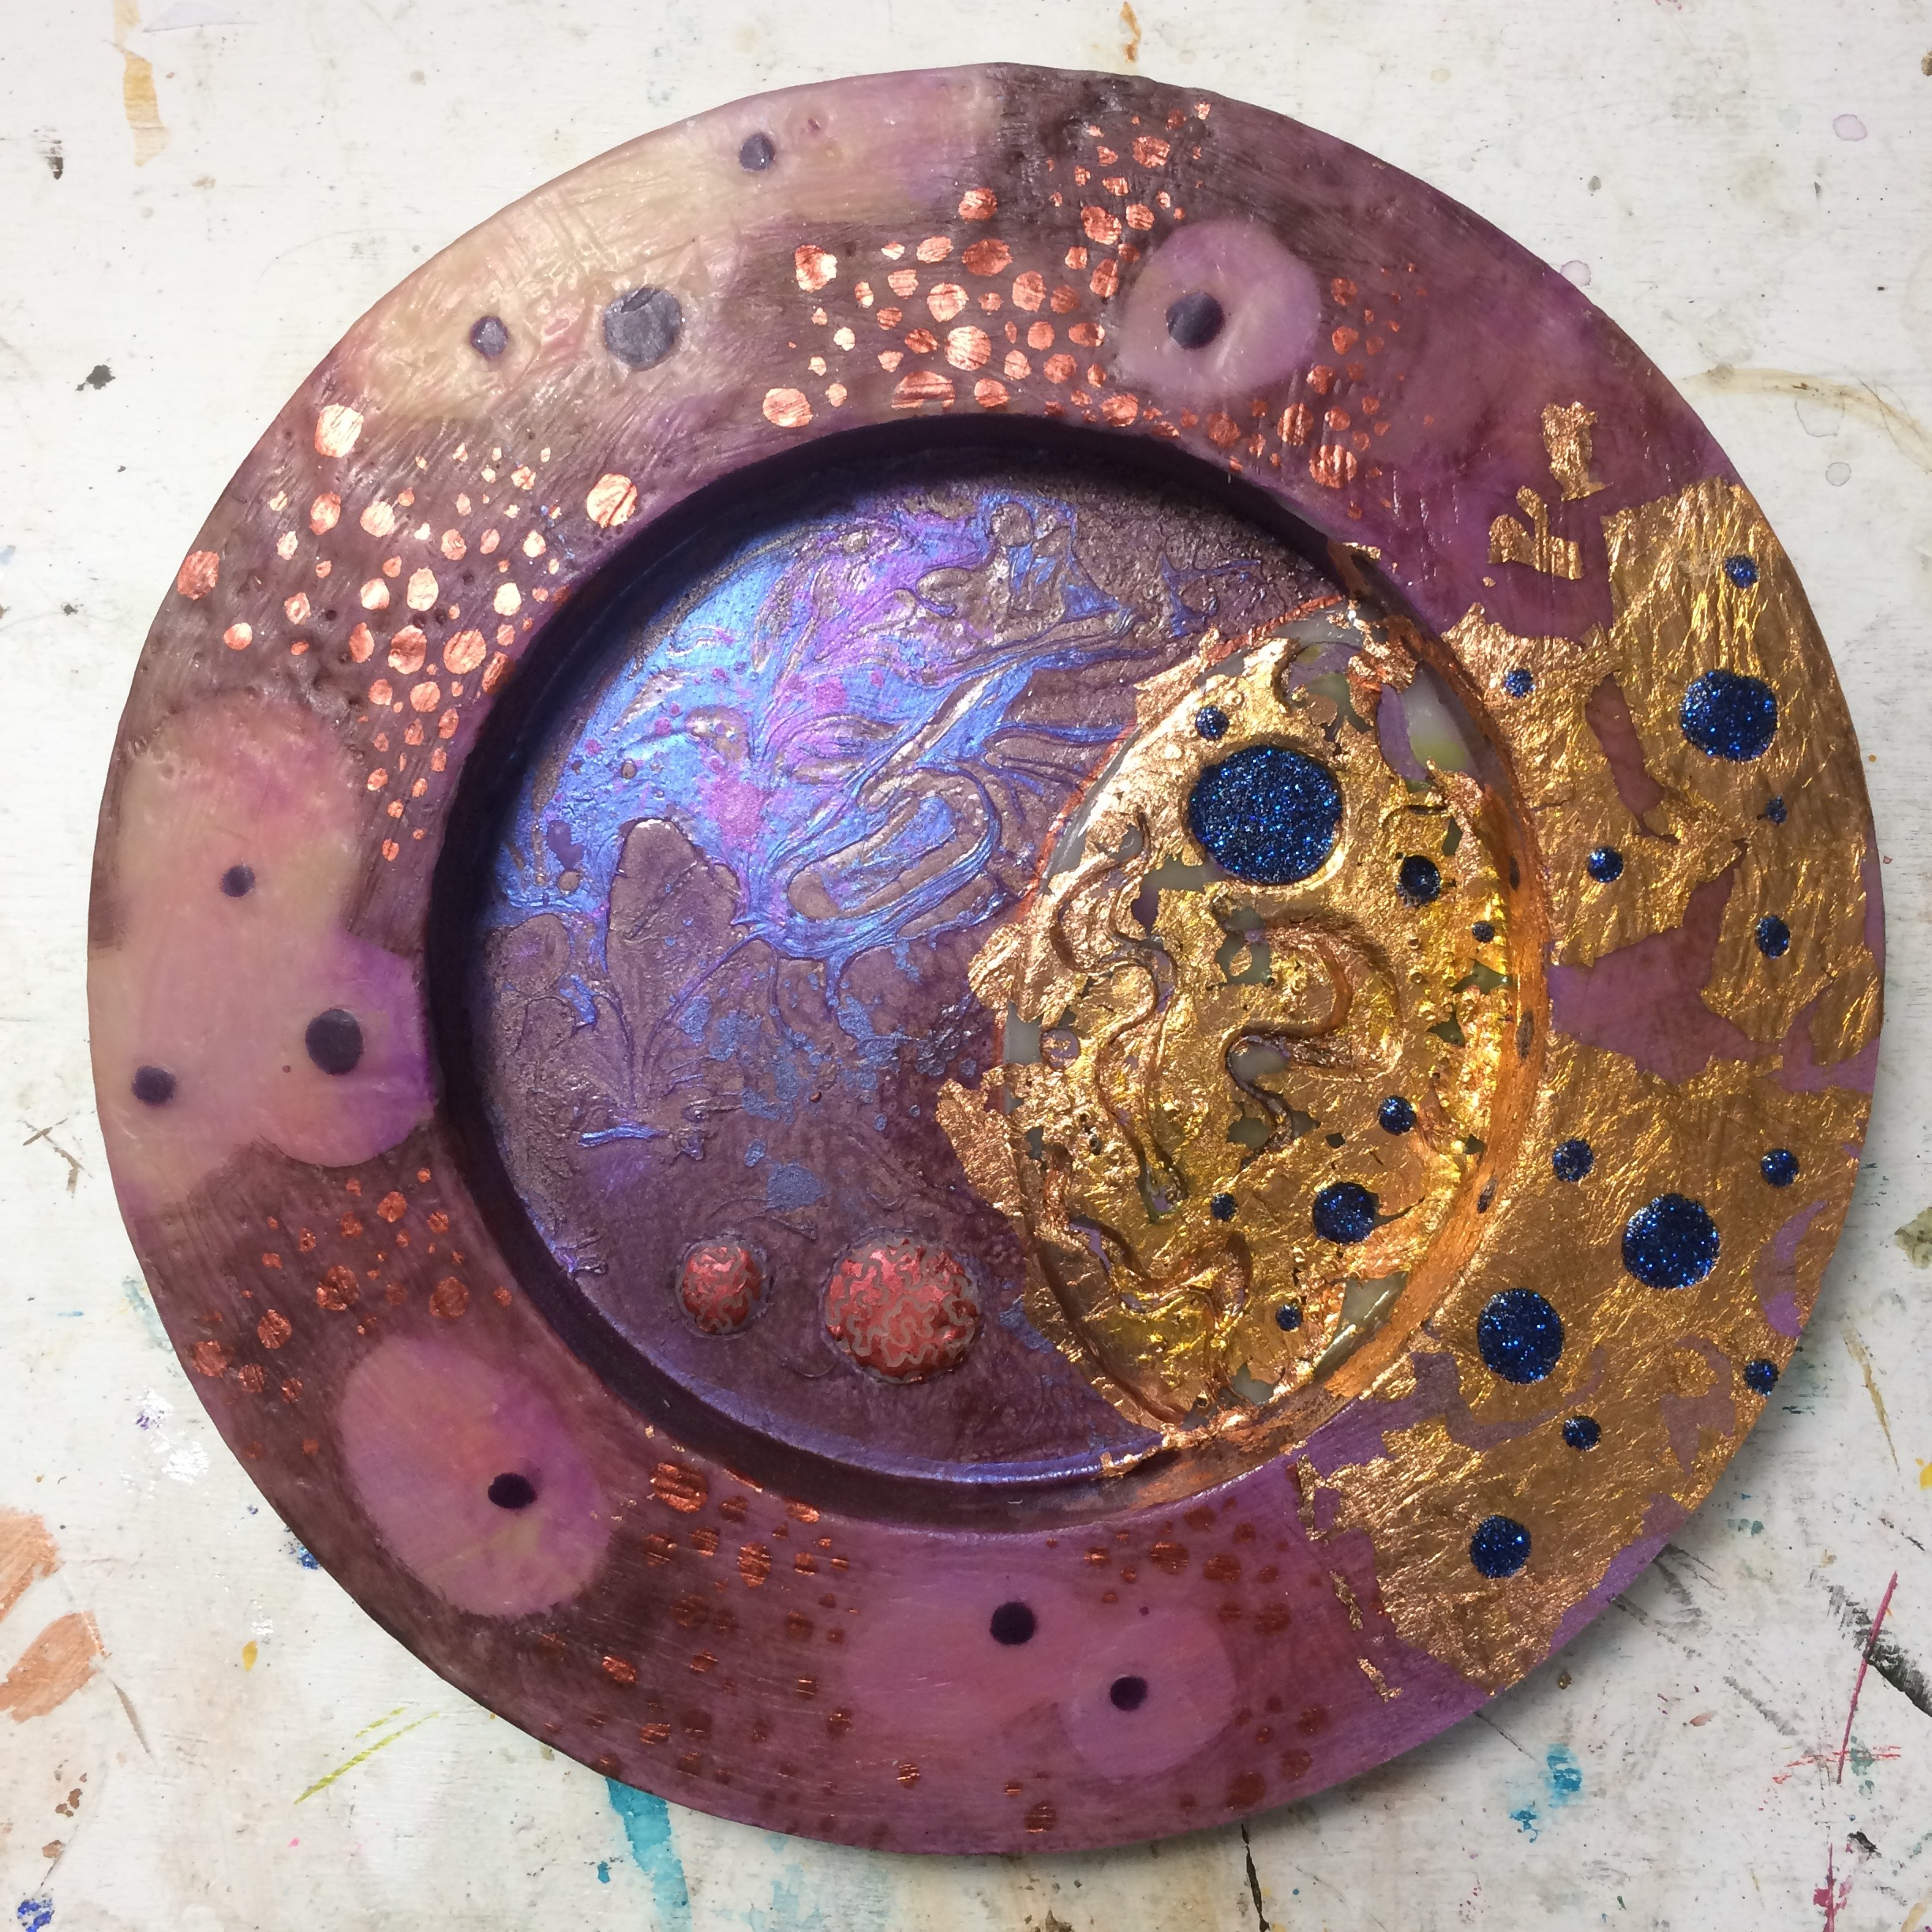 (K) Waxed and carved over circle. Wax pan pastel dots. (A) Glitter, copper foil, acrylic.